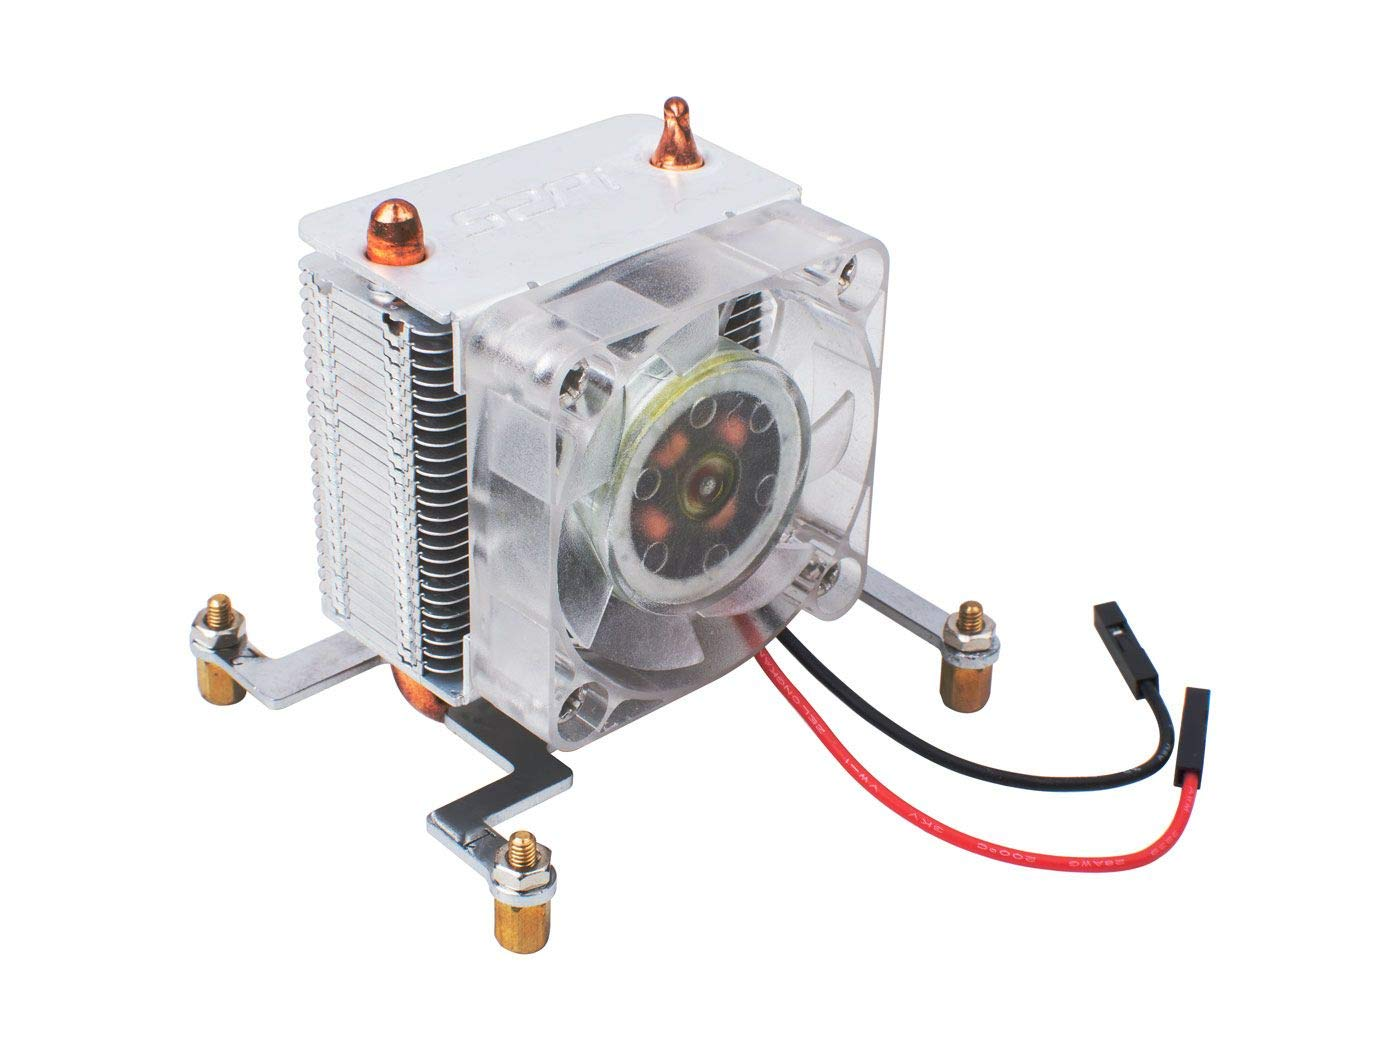 seeed studio Blink Blink ICE Tower CPU Cooling Fan for Raspberry Pi (Support Pi 4)